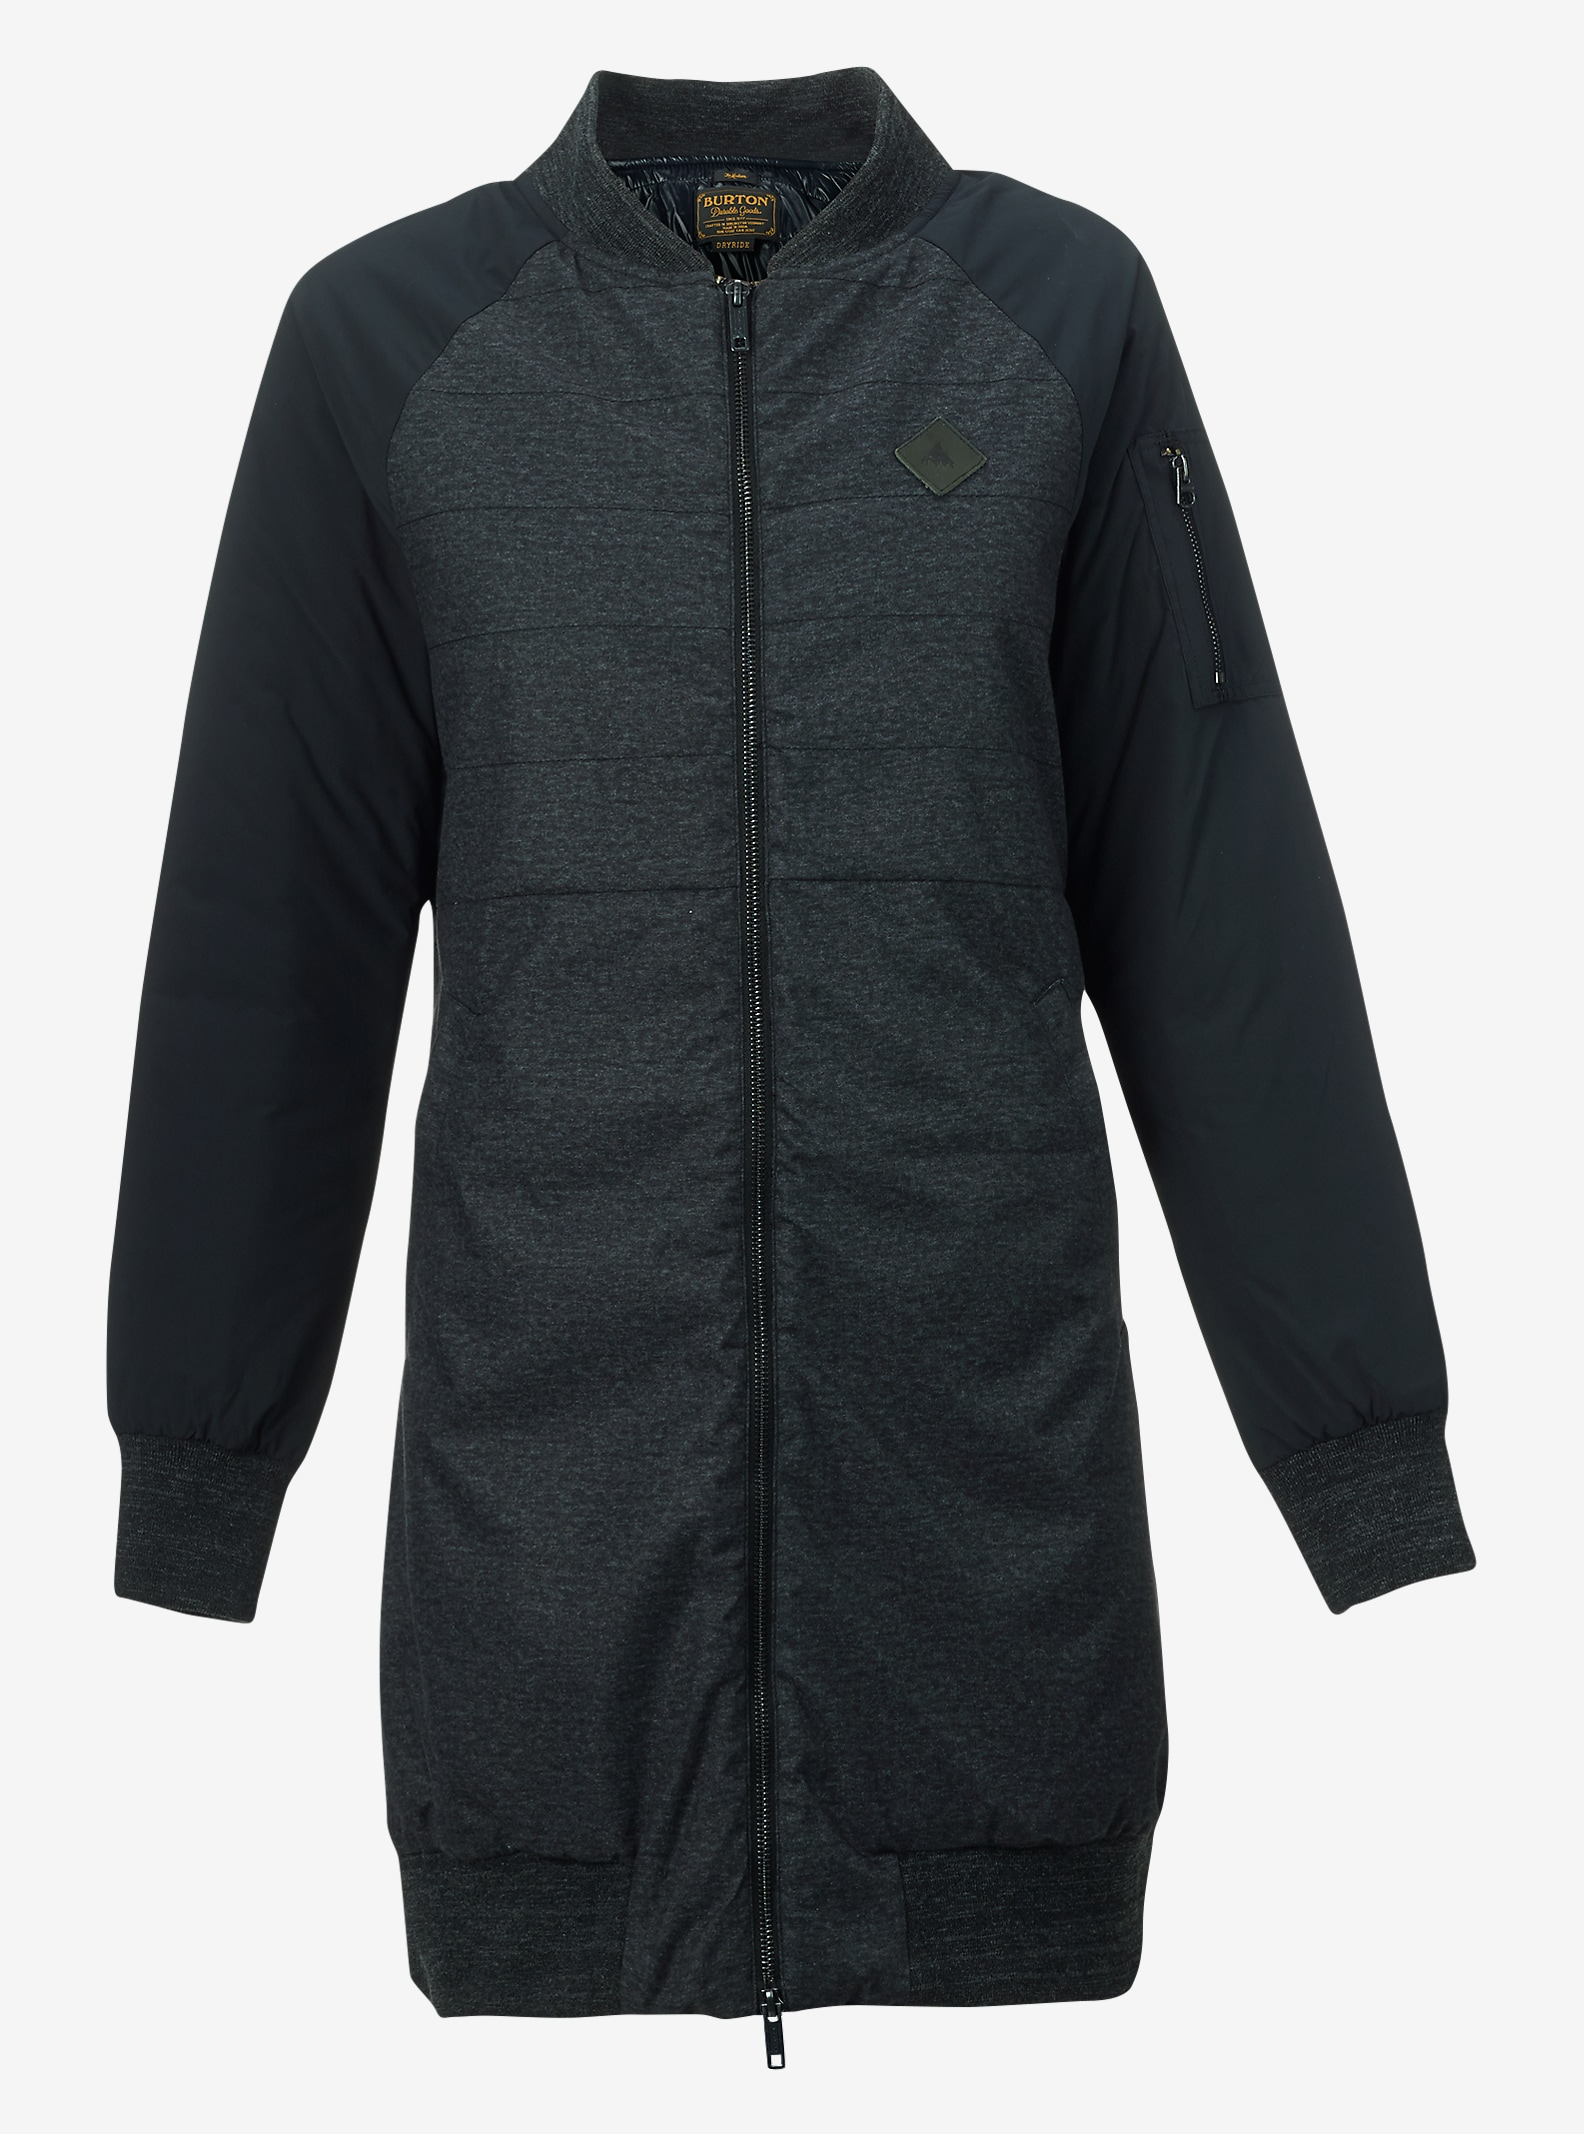 Burton Shelburne Jacke angezeigt in True Black Heather